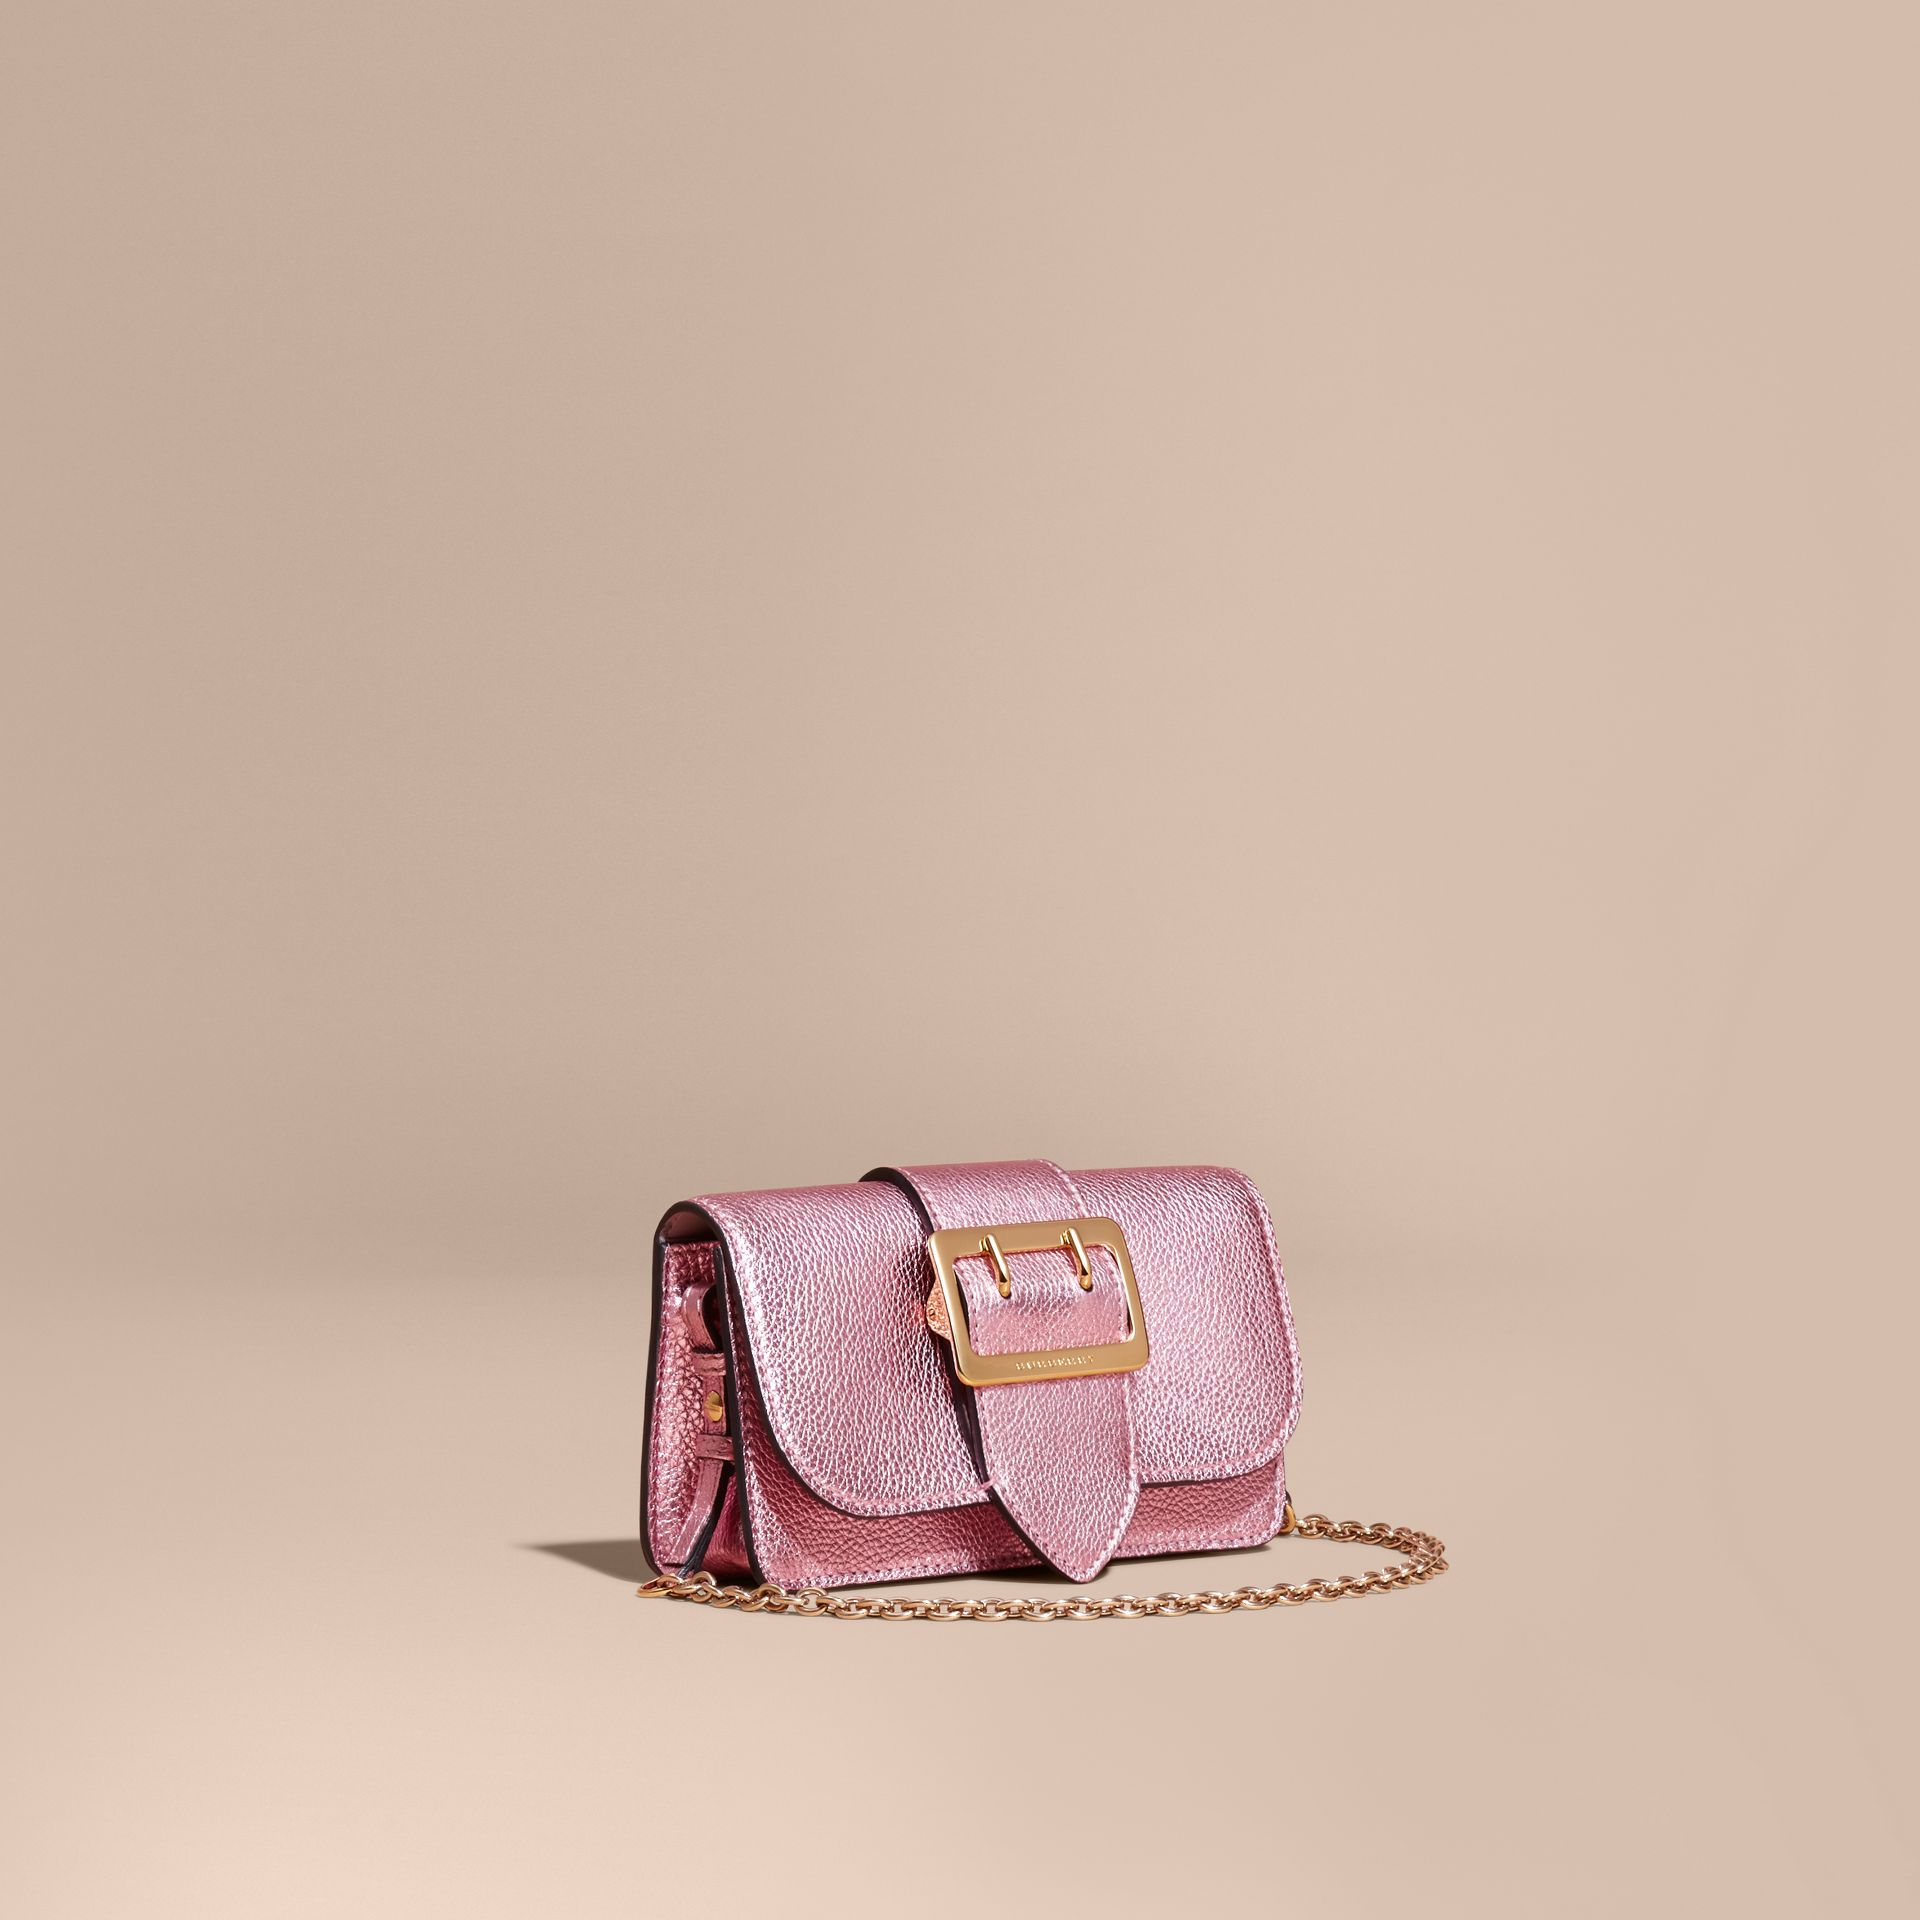 The Mini Buckle Bag in Metallic Grainy Leather in Pale Orchid - gallery image 1